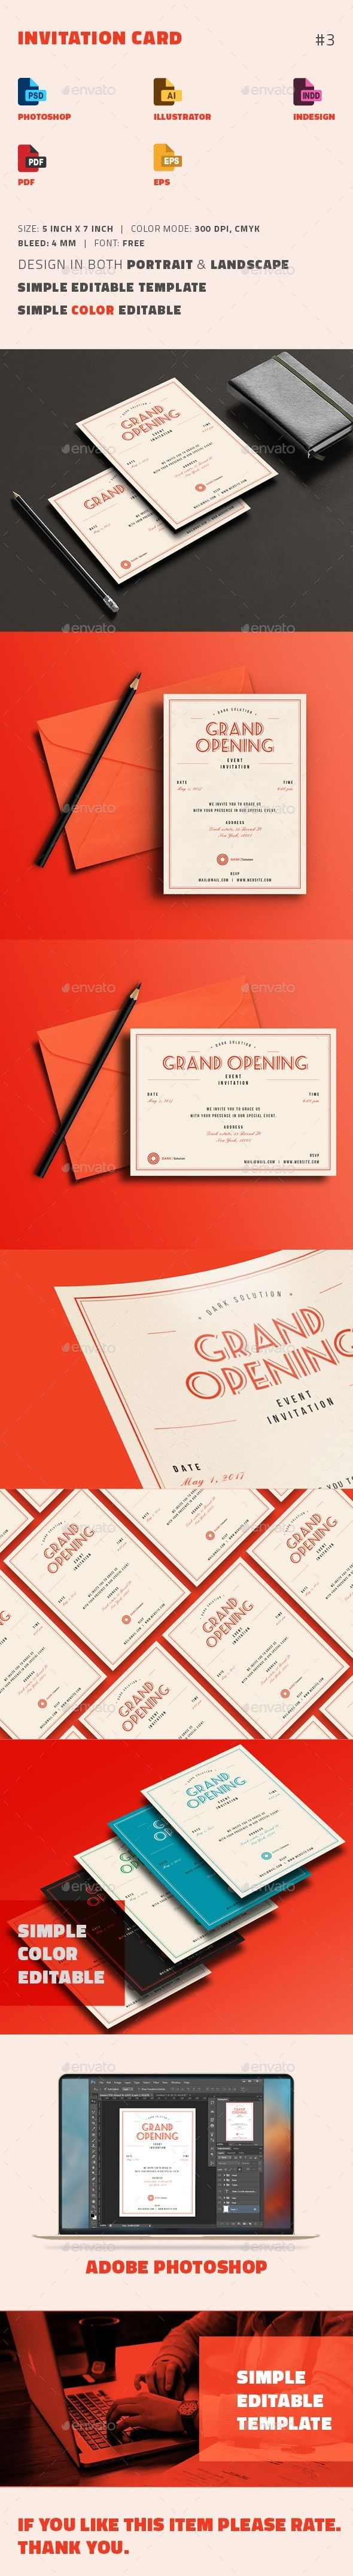 144 best invitation card templates images on pinterest card invitation card stopboris Gallery